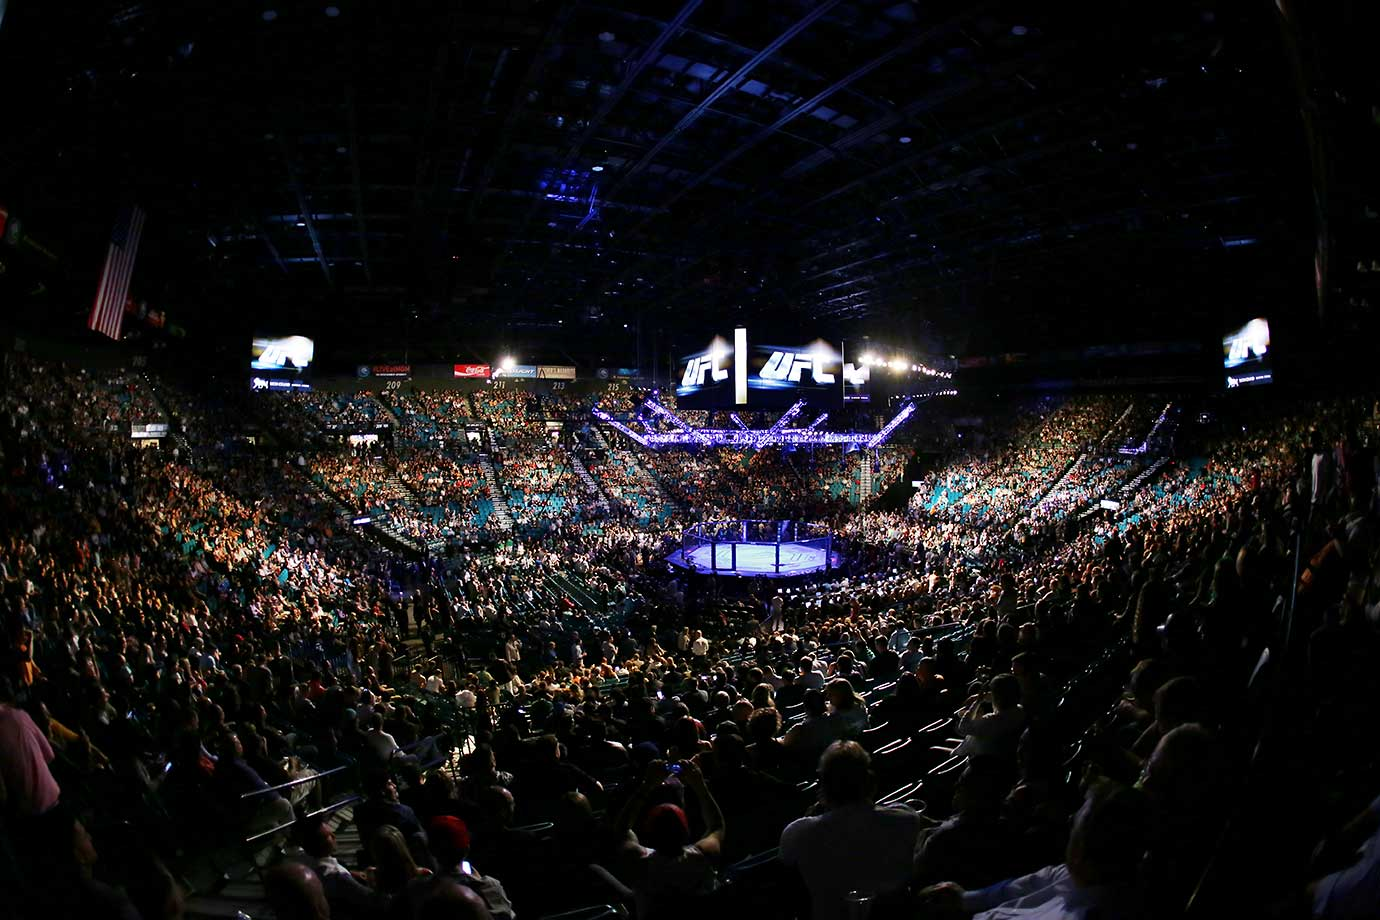 General view of MGM Grand Garden Arena during UFC 196.